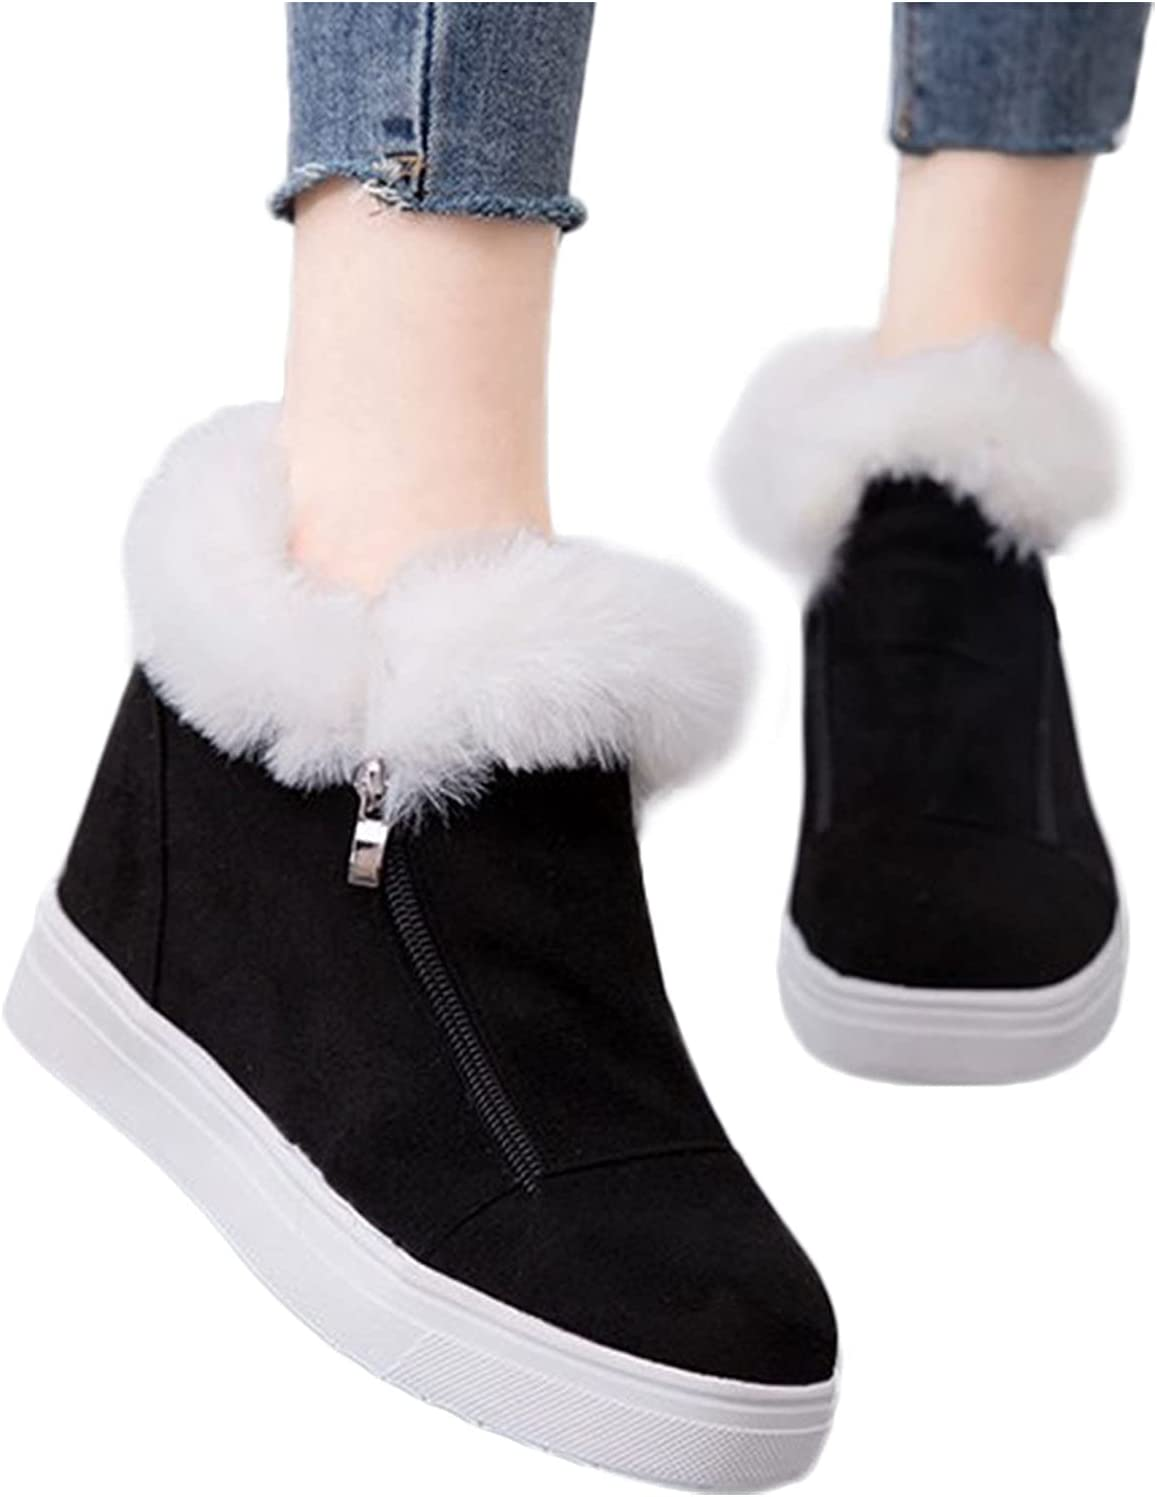 Woolkey Ankle Booties for Women Round Toe Flat Short Winter Boots Fashion Zipper Warm Cotton Work Western Snow Boots for Ladies Autumn Winter Street Party Riding Outdoor Trekking (Black, 9.5-10)